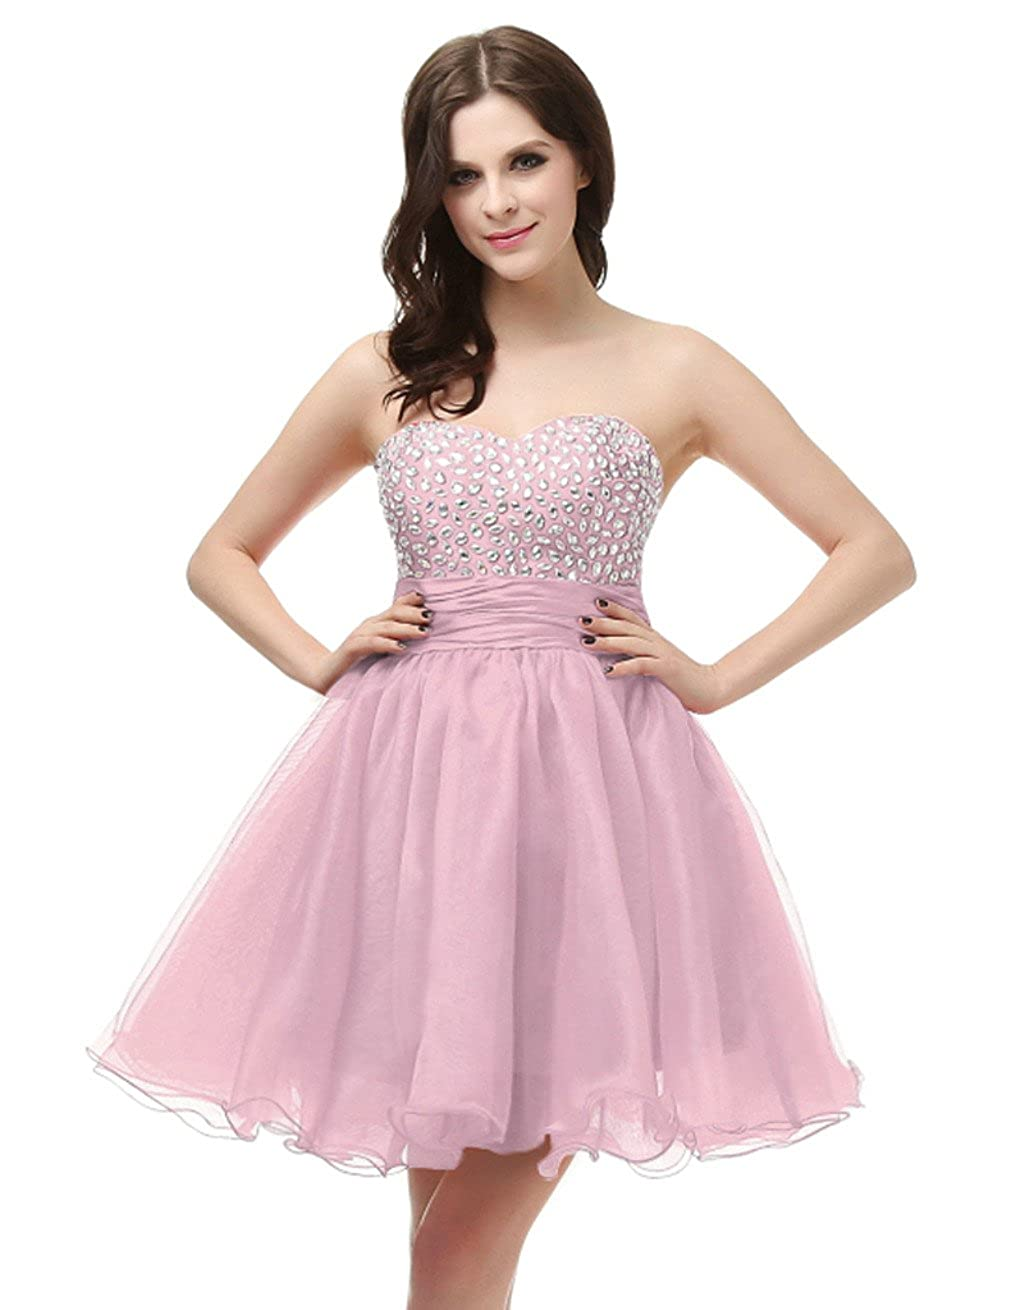 Pink Vantexi Women's Strapless Short Prom Homecoming Dress Party Gown